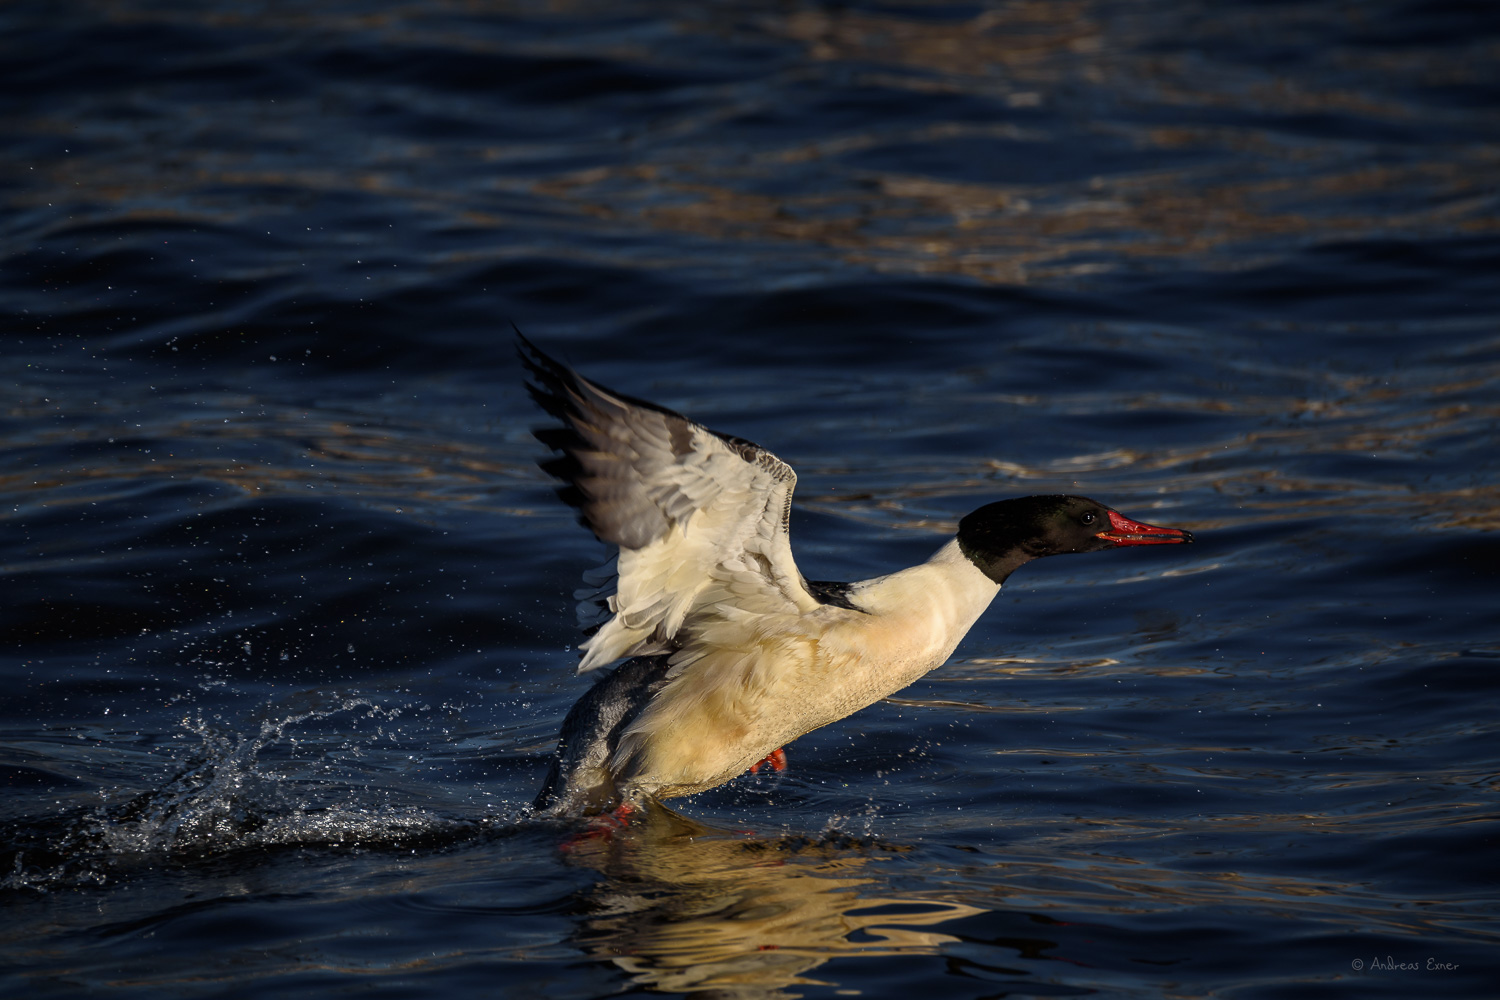 Male Common Merganser, Mississippi River, Le Claire, Iowa